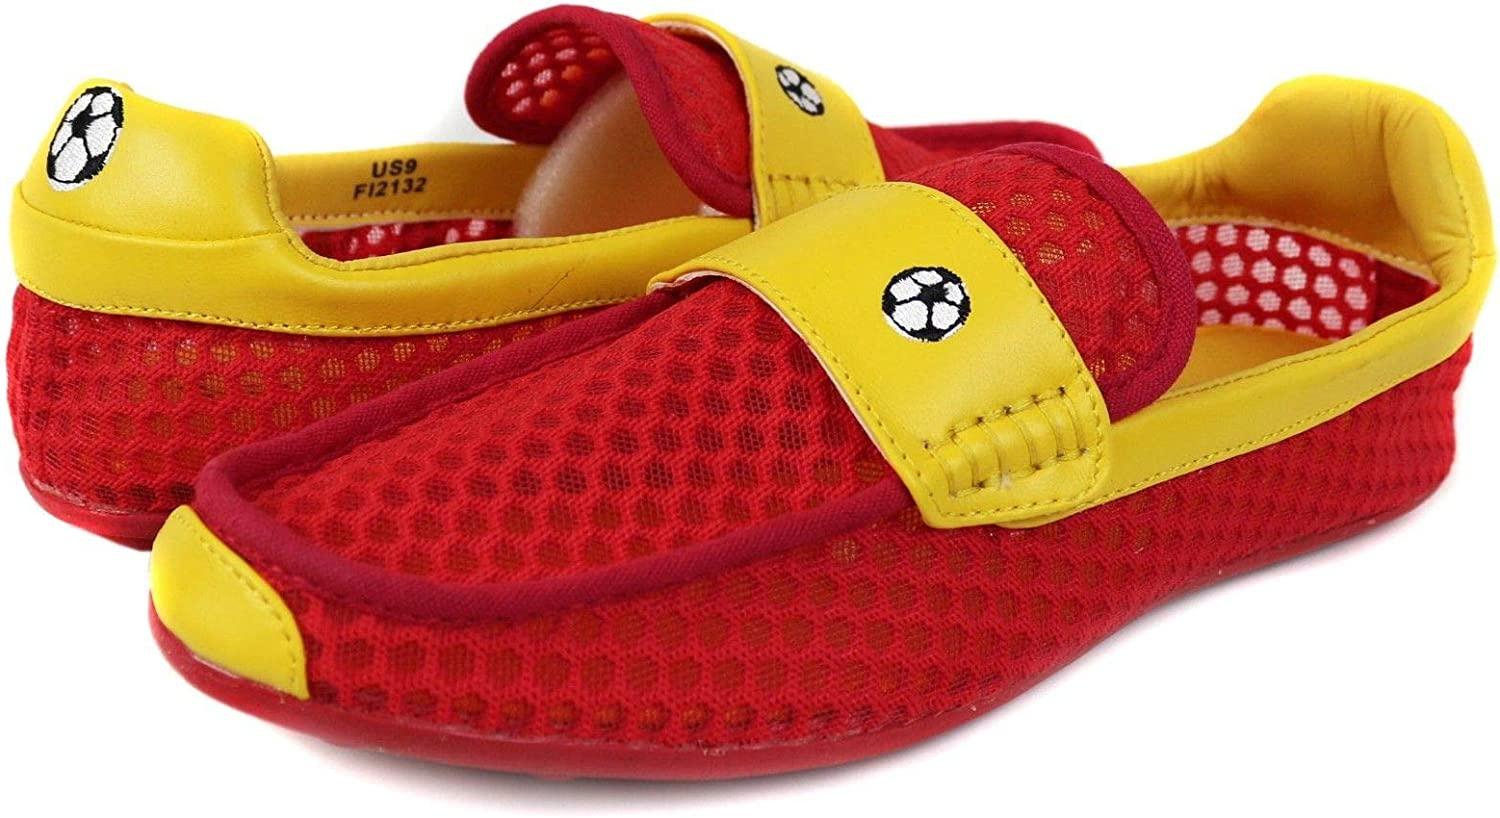 Fiesso Men's Soccer Football World Cup Spain 2018 Mesh Slip On Moccasins Loafers Shoes (Red,Yellow)